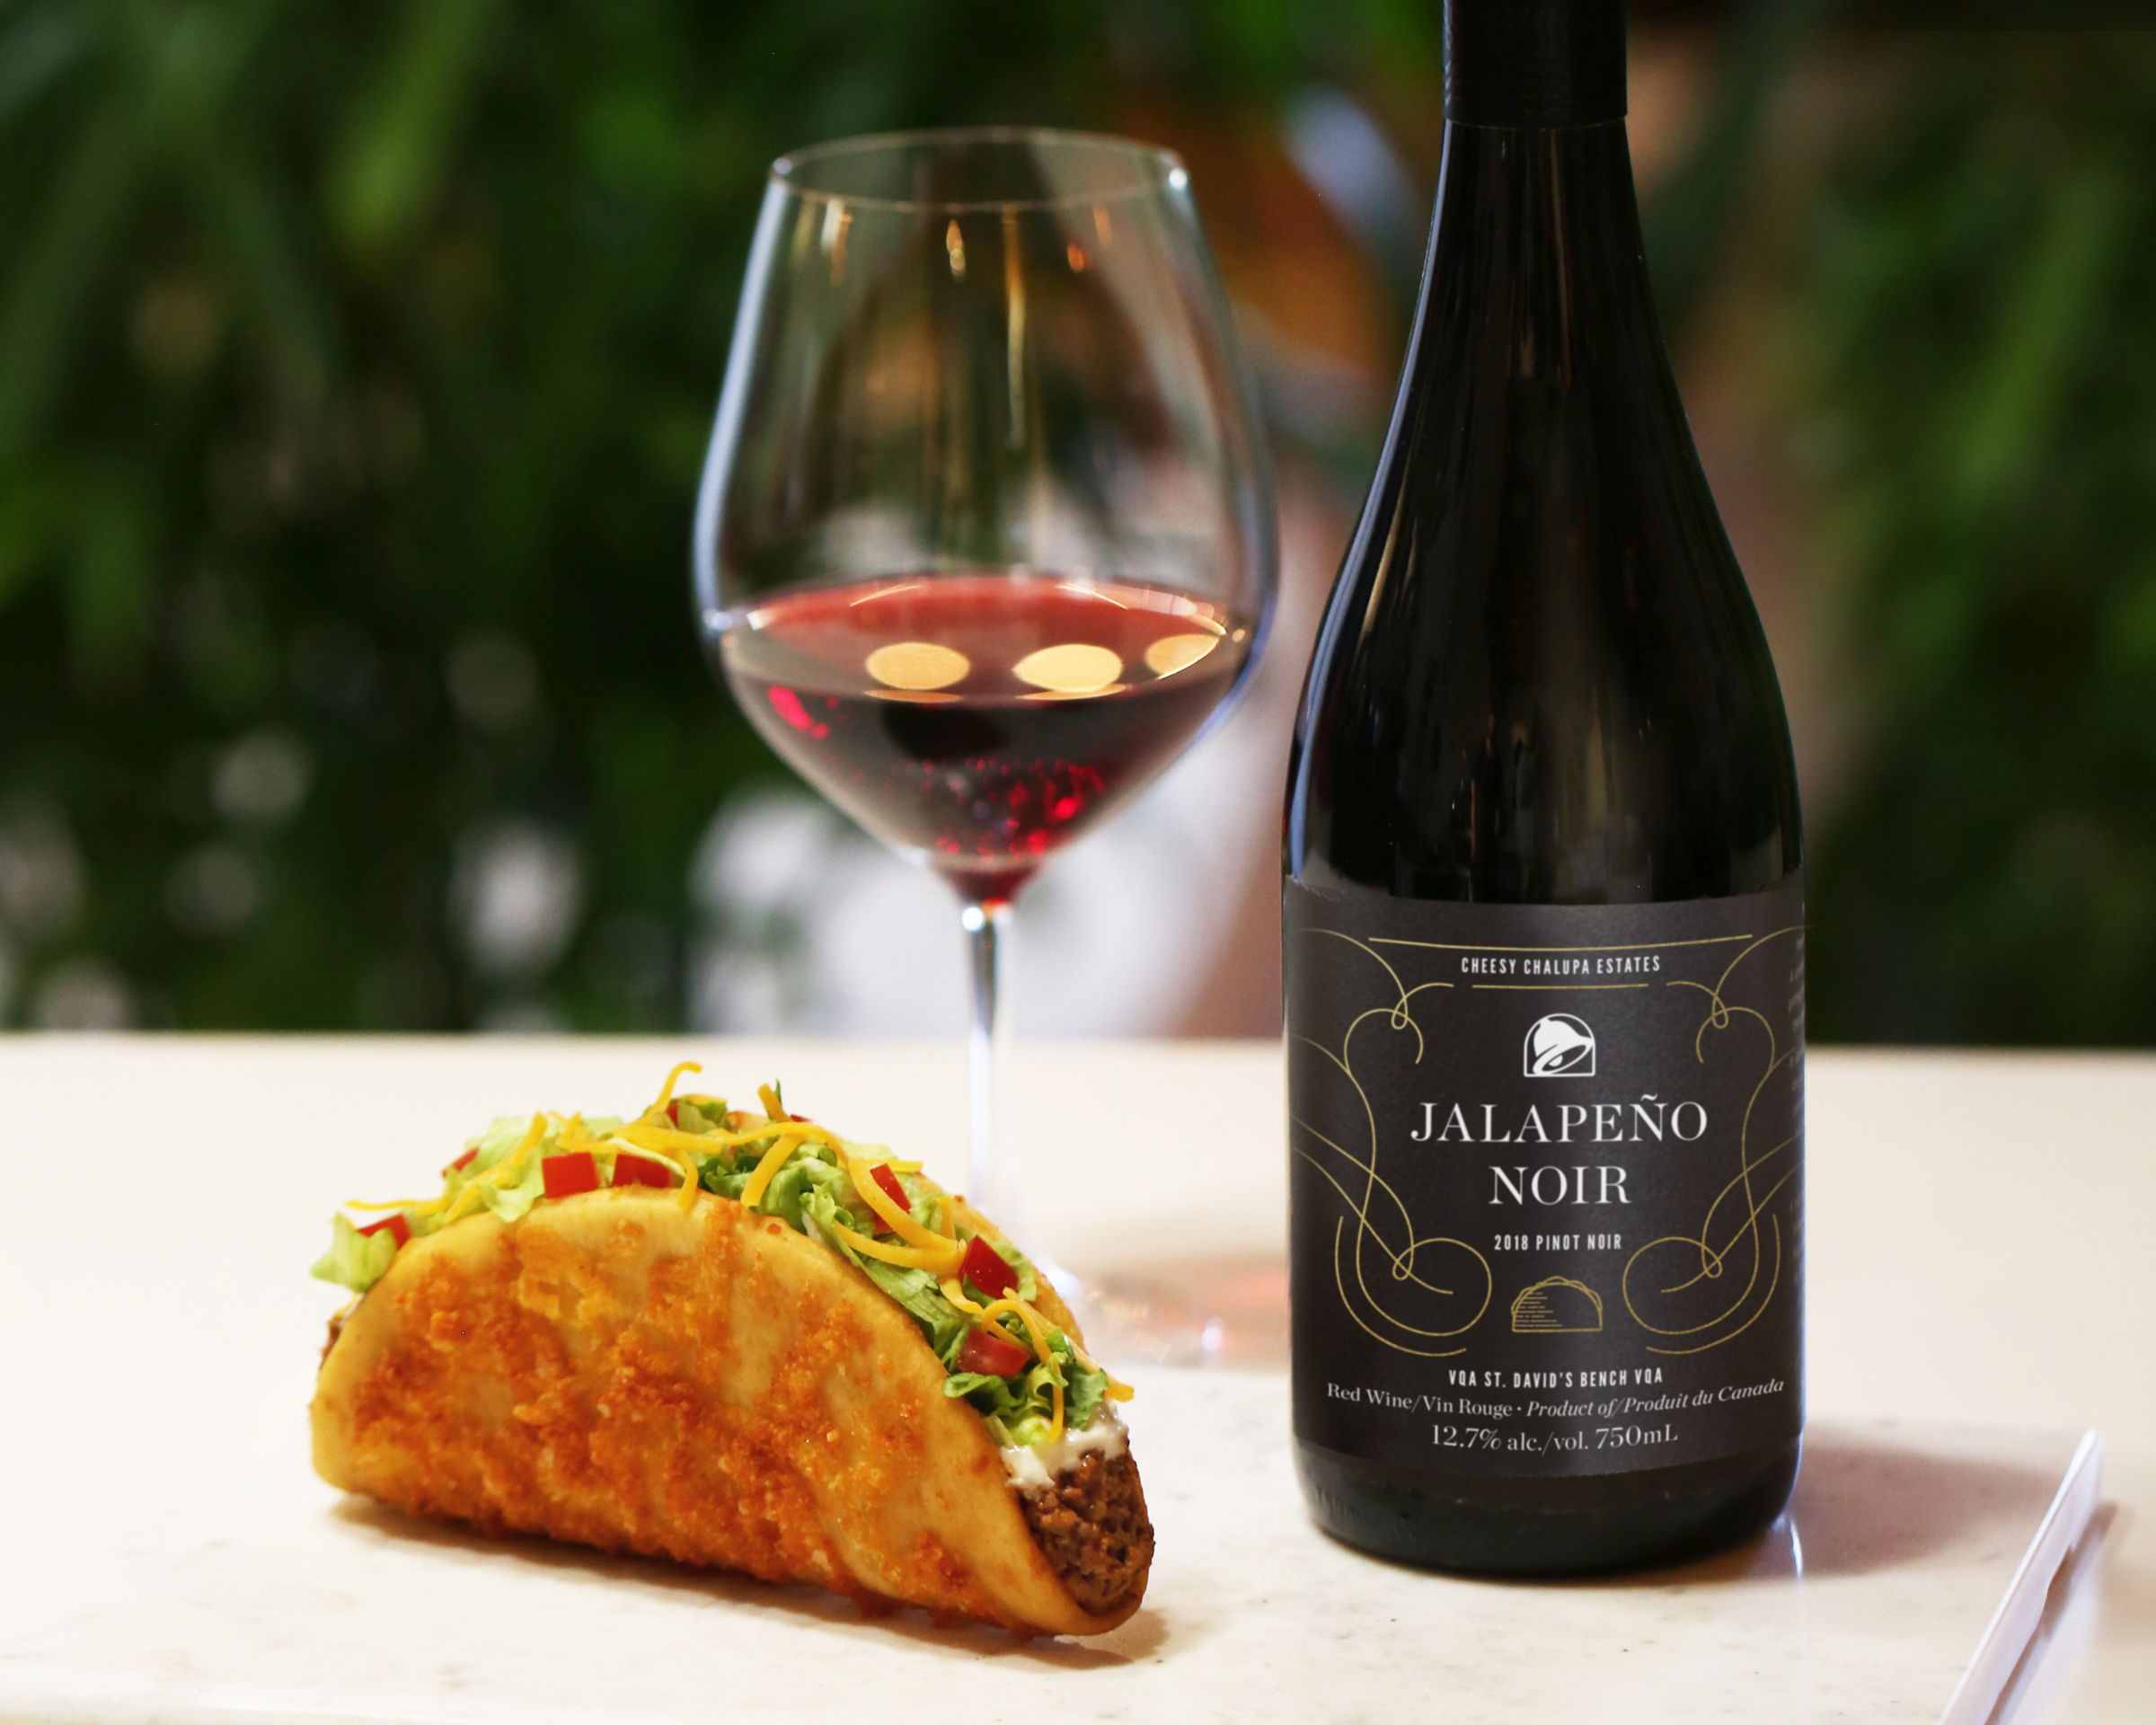 Taco Bell now has its own wine